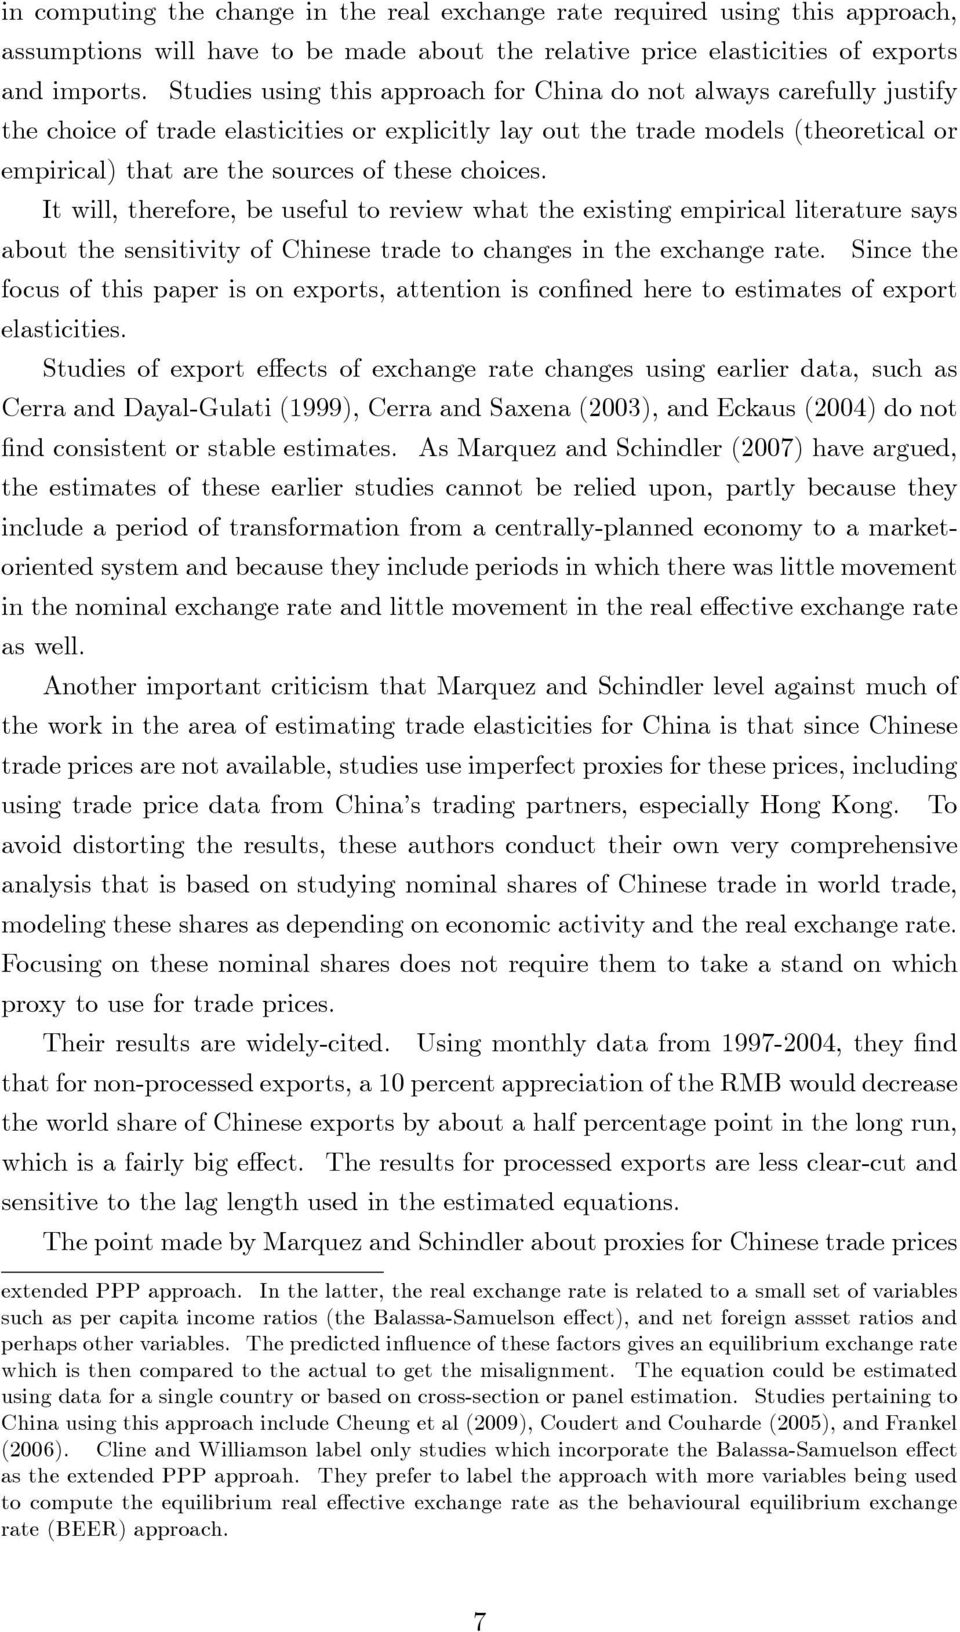 choices. It will, therefore, be useful to review what the existing empirical literature says about the sensitivity of Chinese trade to changes in the exchange rate.